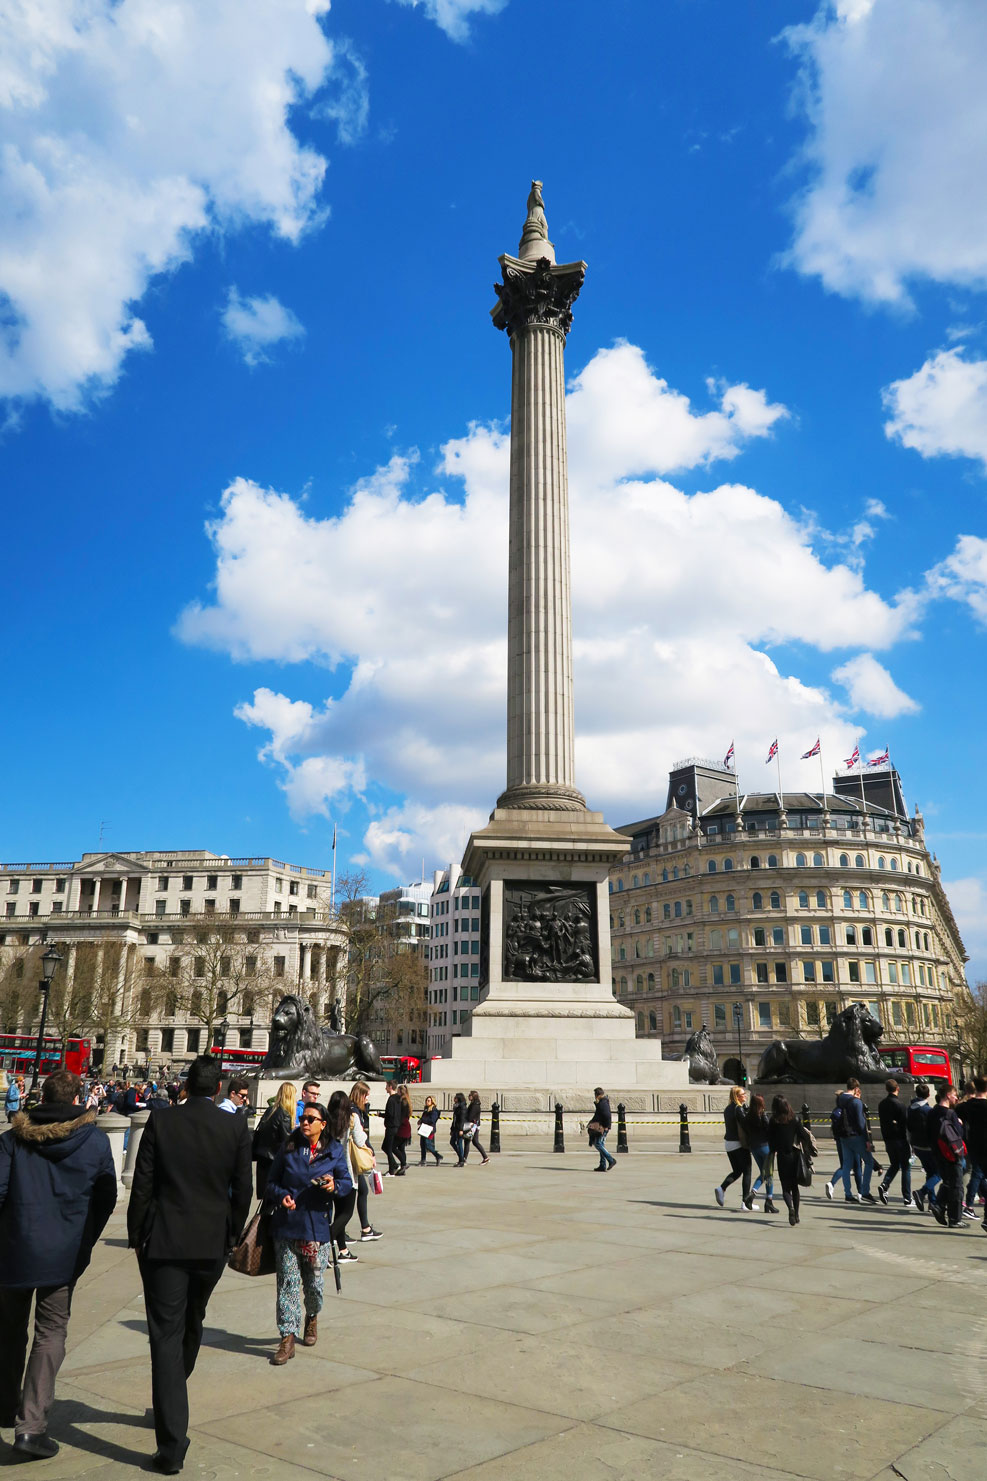 trafalgar square in london with blue sky and clouds